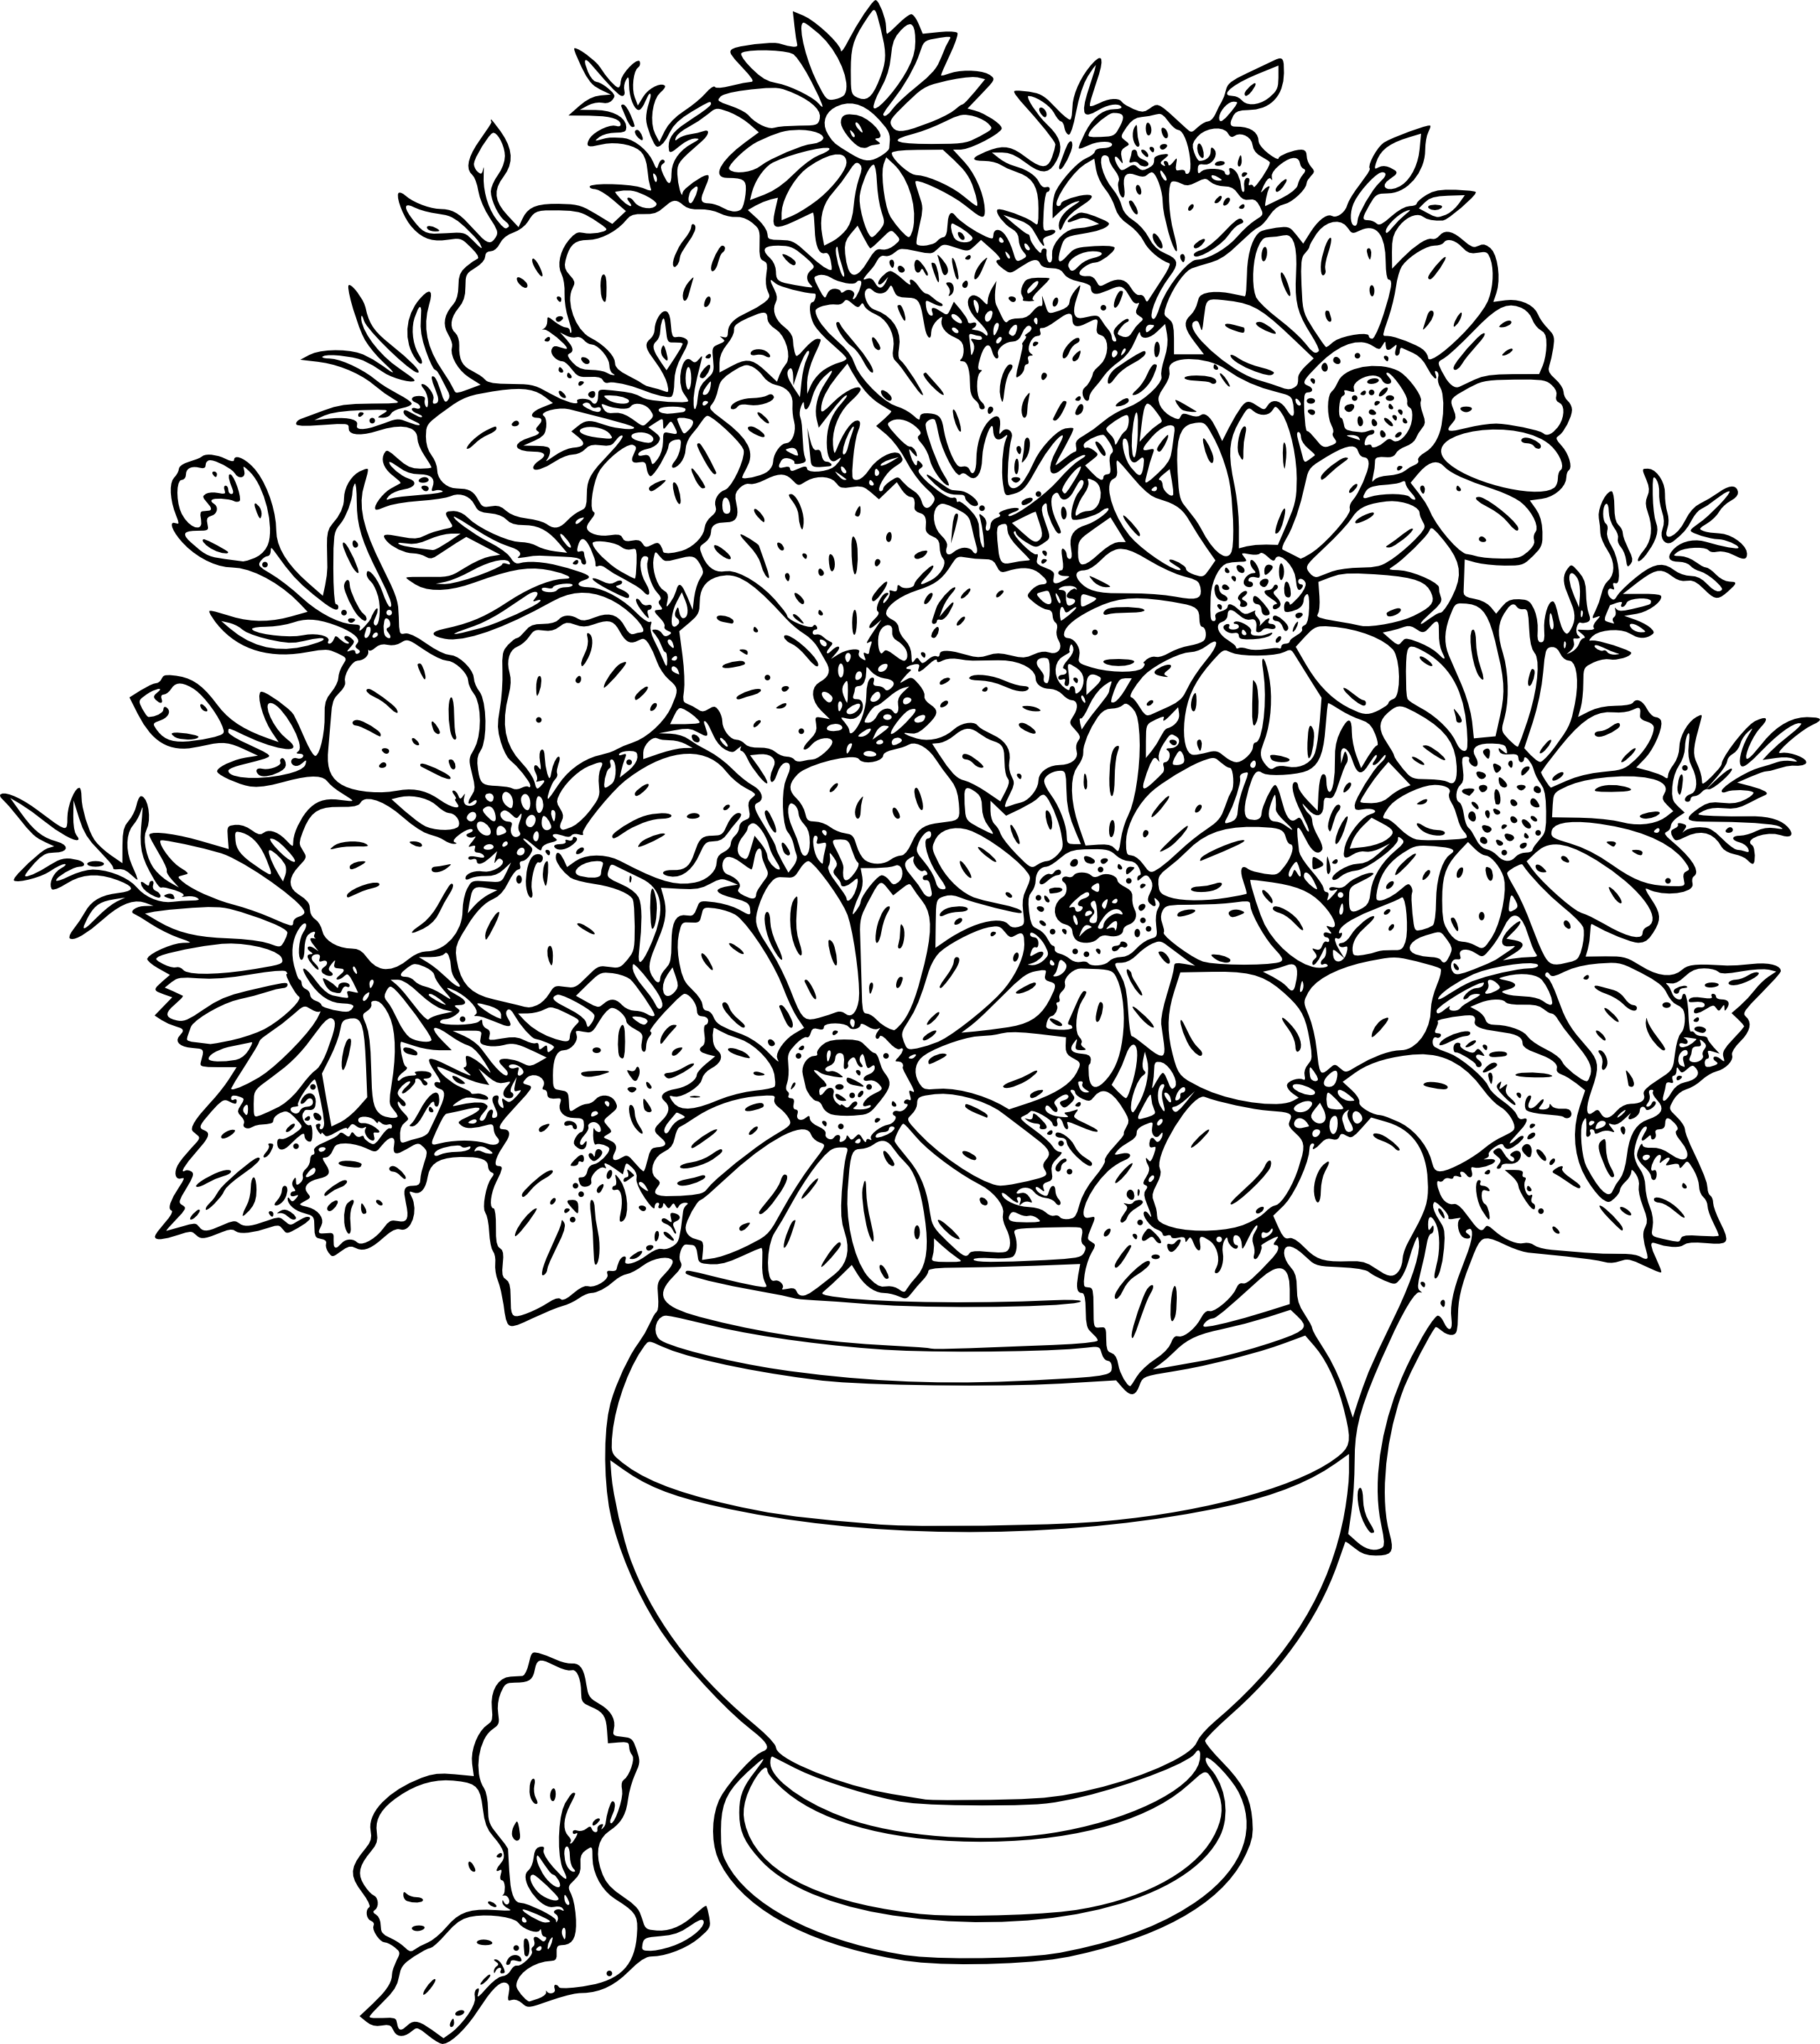 Flower Plant Line Drawing : Flowers line drawing images clipart best